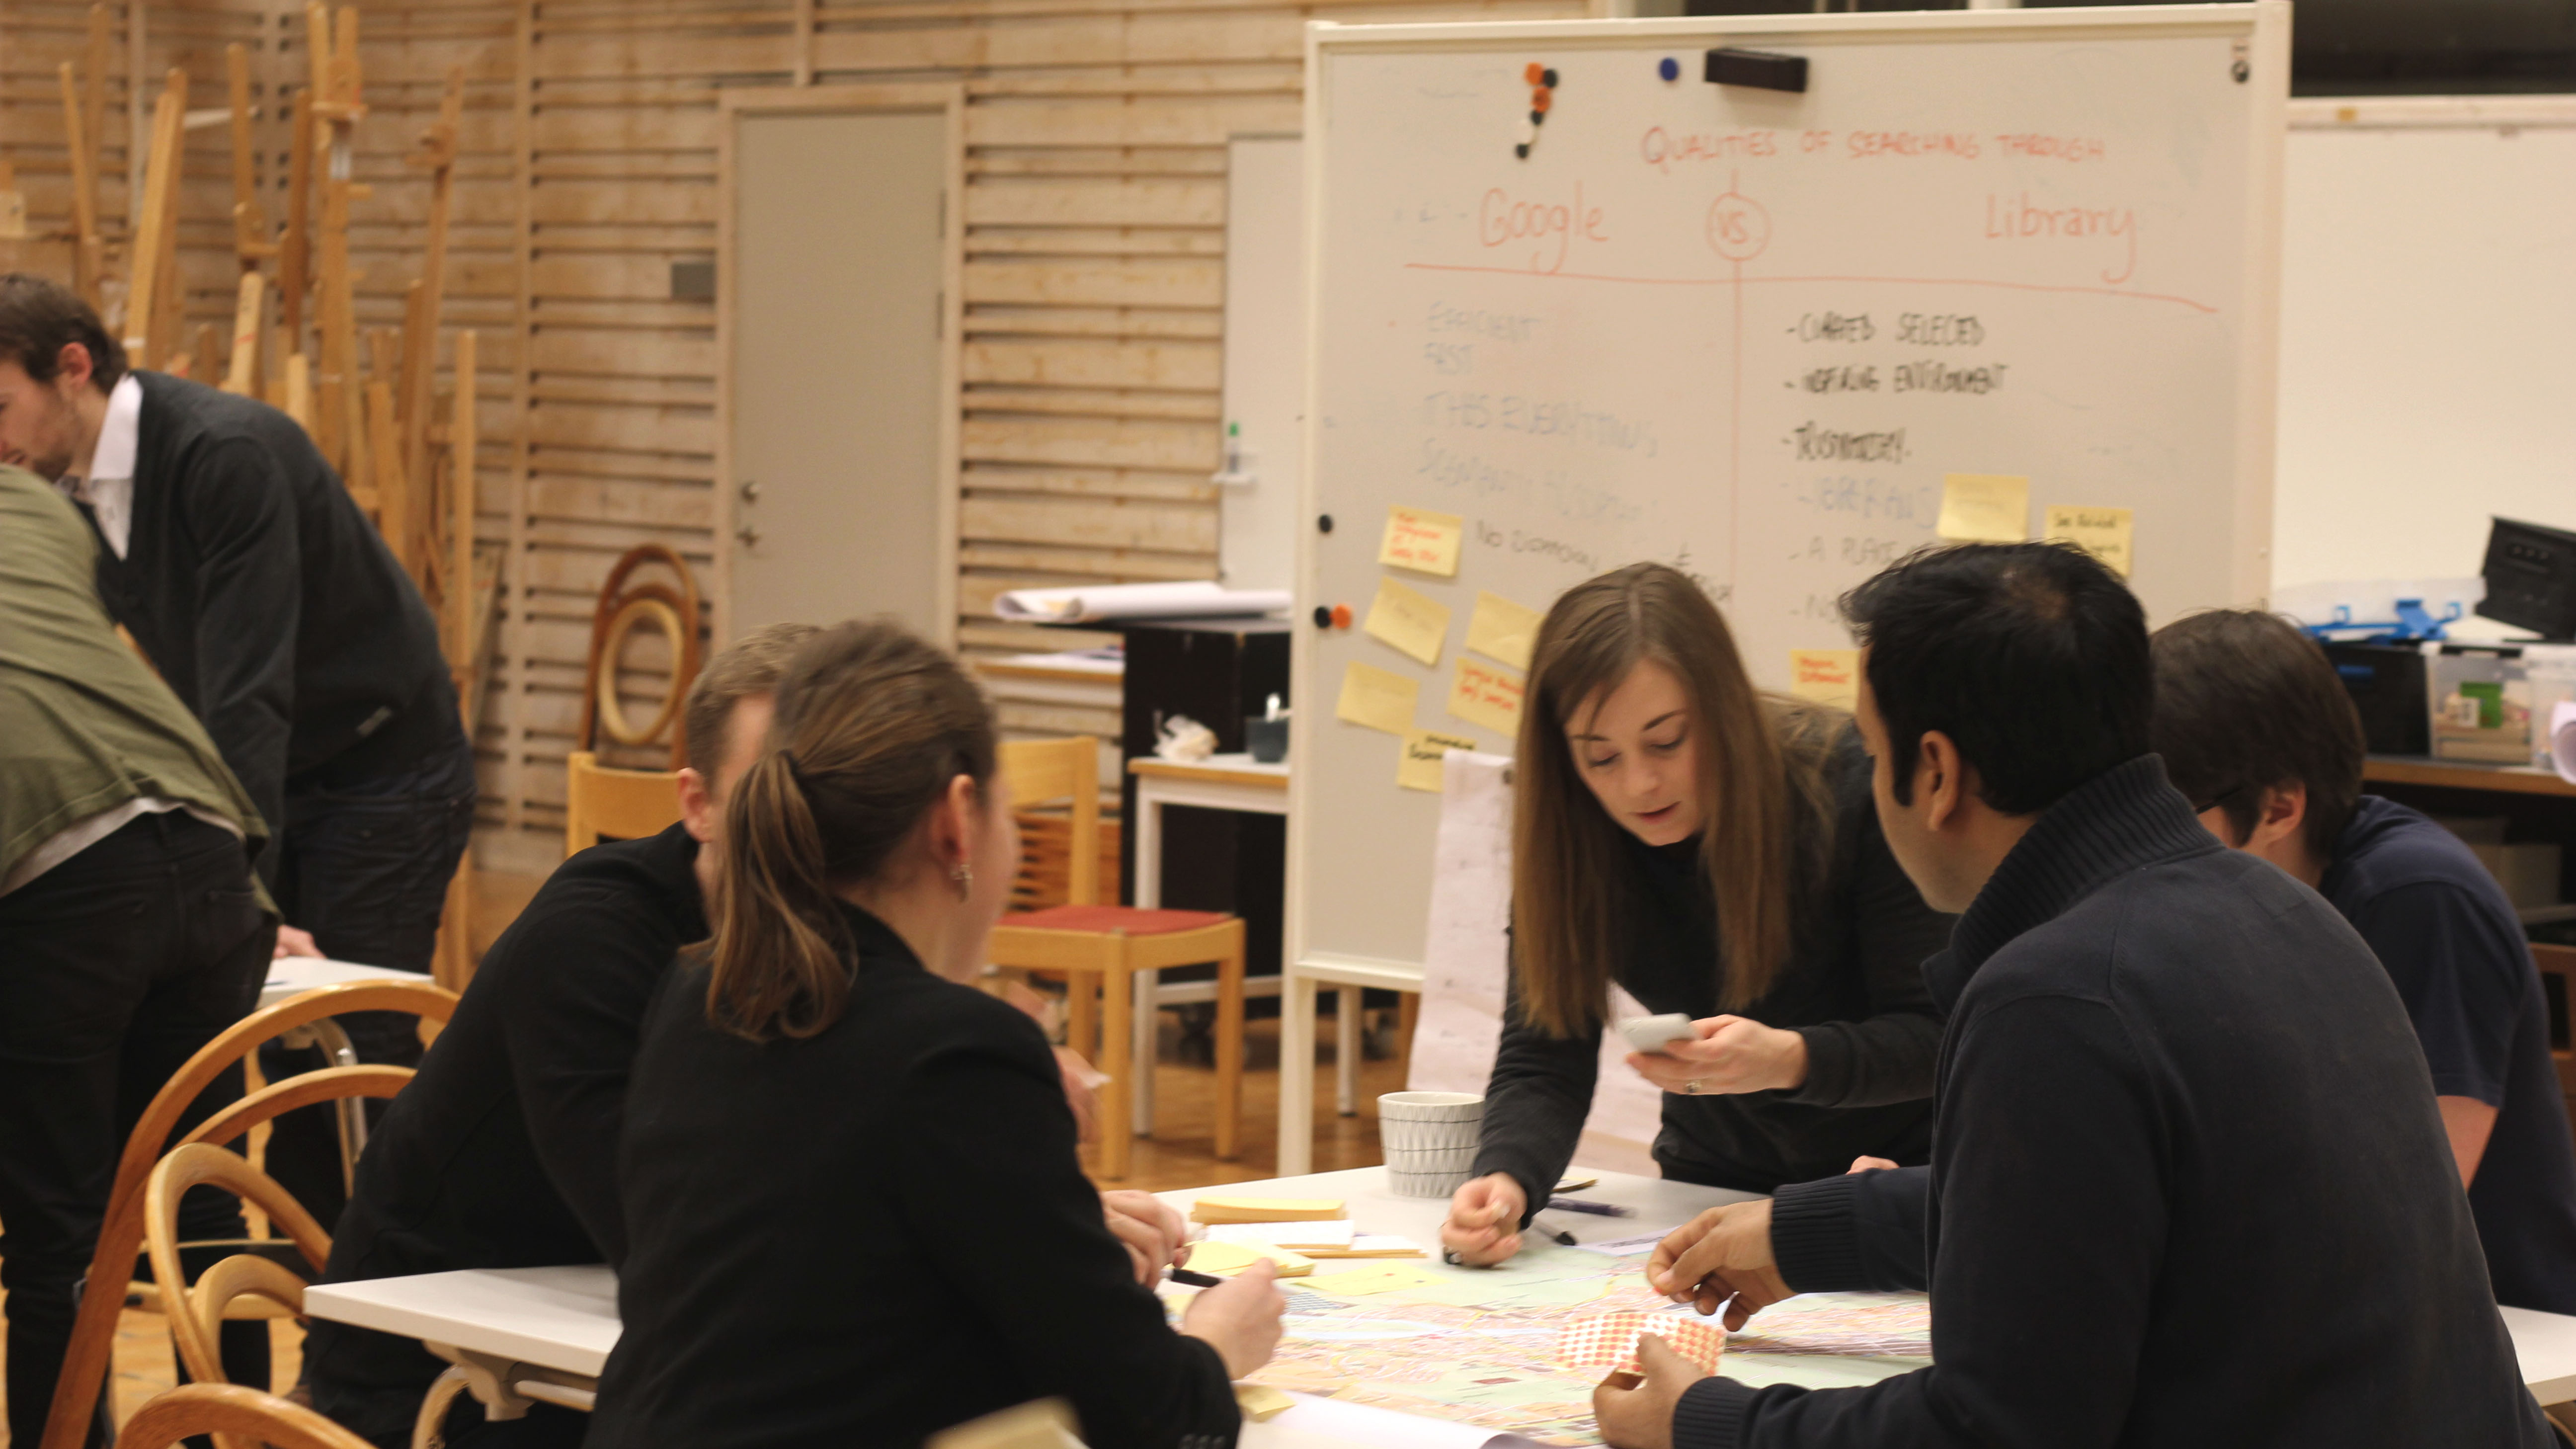 The future of the Library cocreation workshop